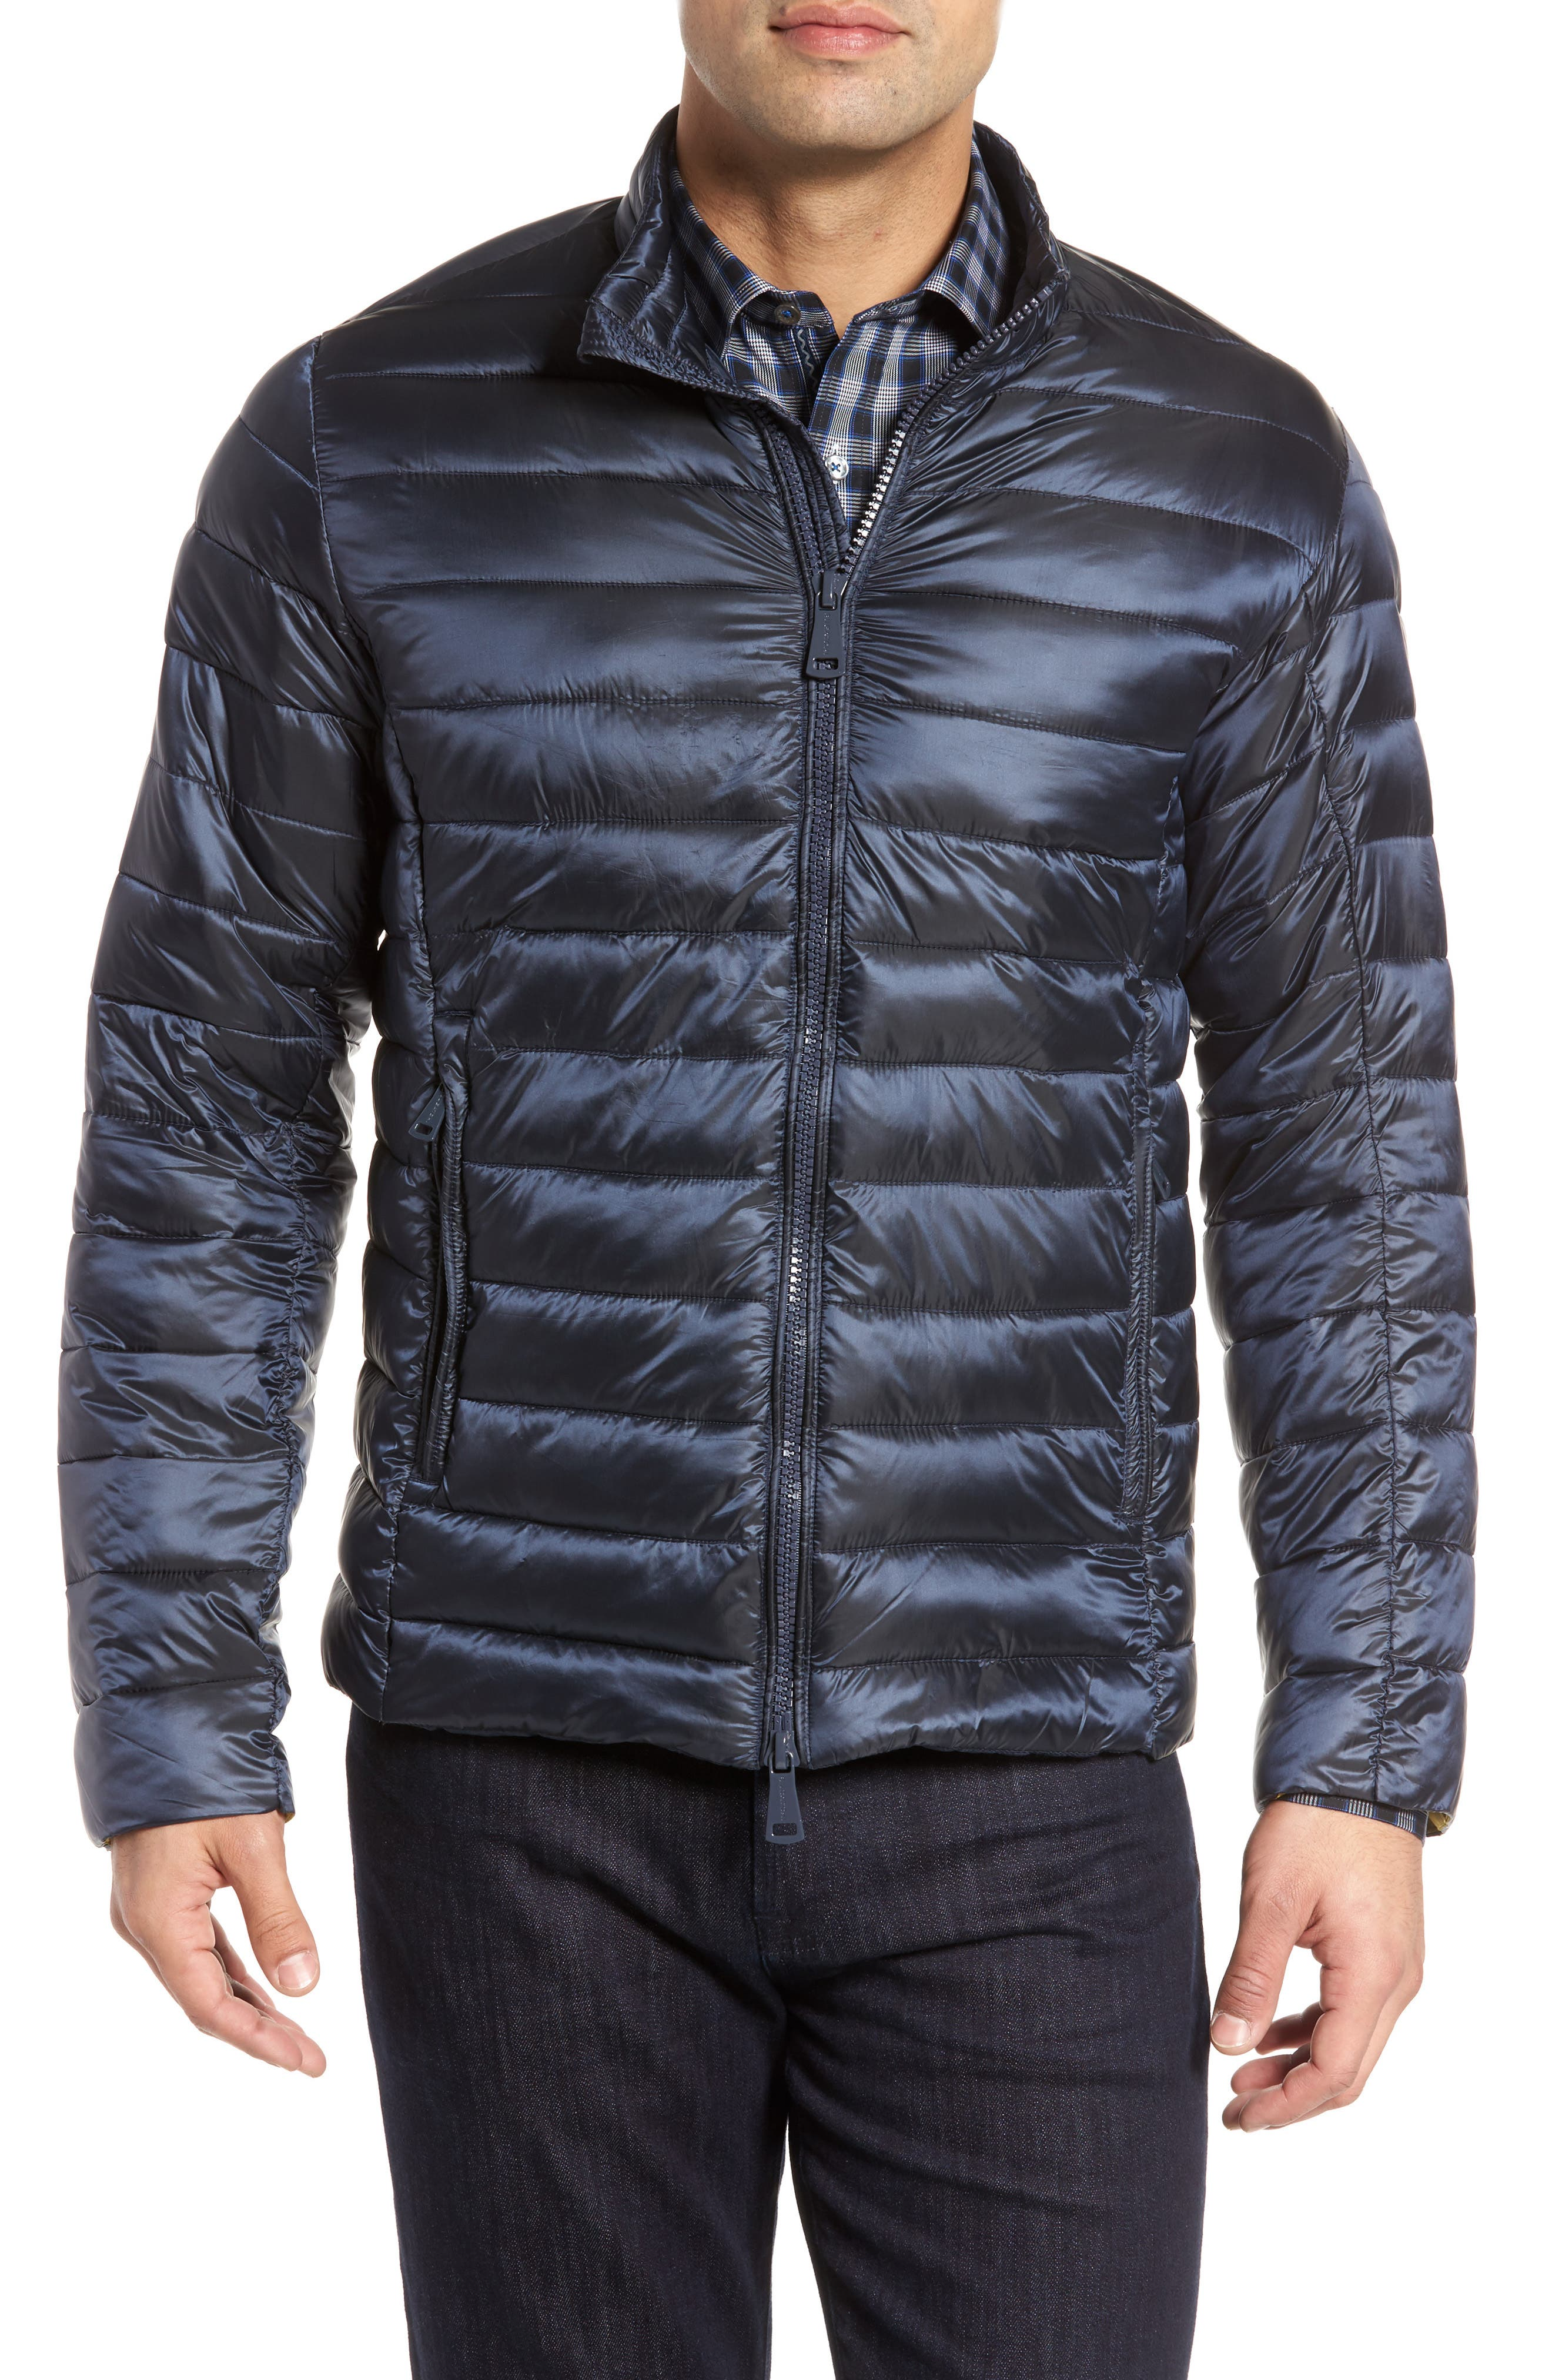 Channel Quilted Jacket,                             Main thumbnail 1, color,                             Navy